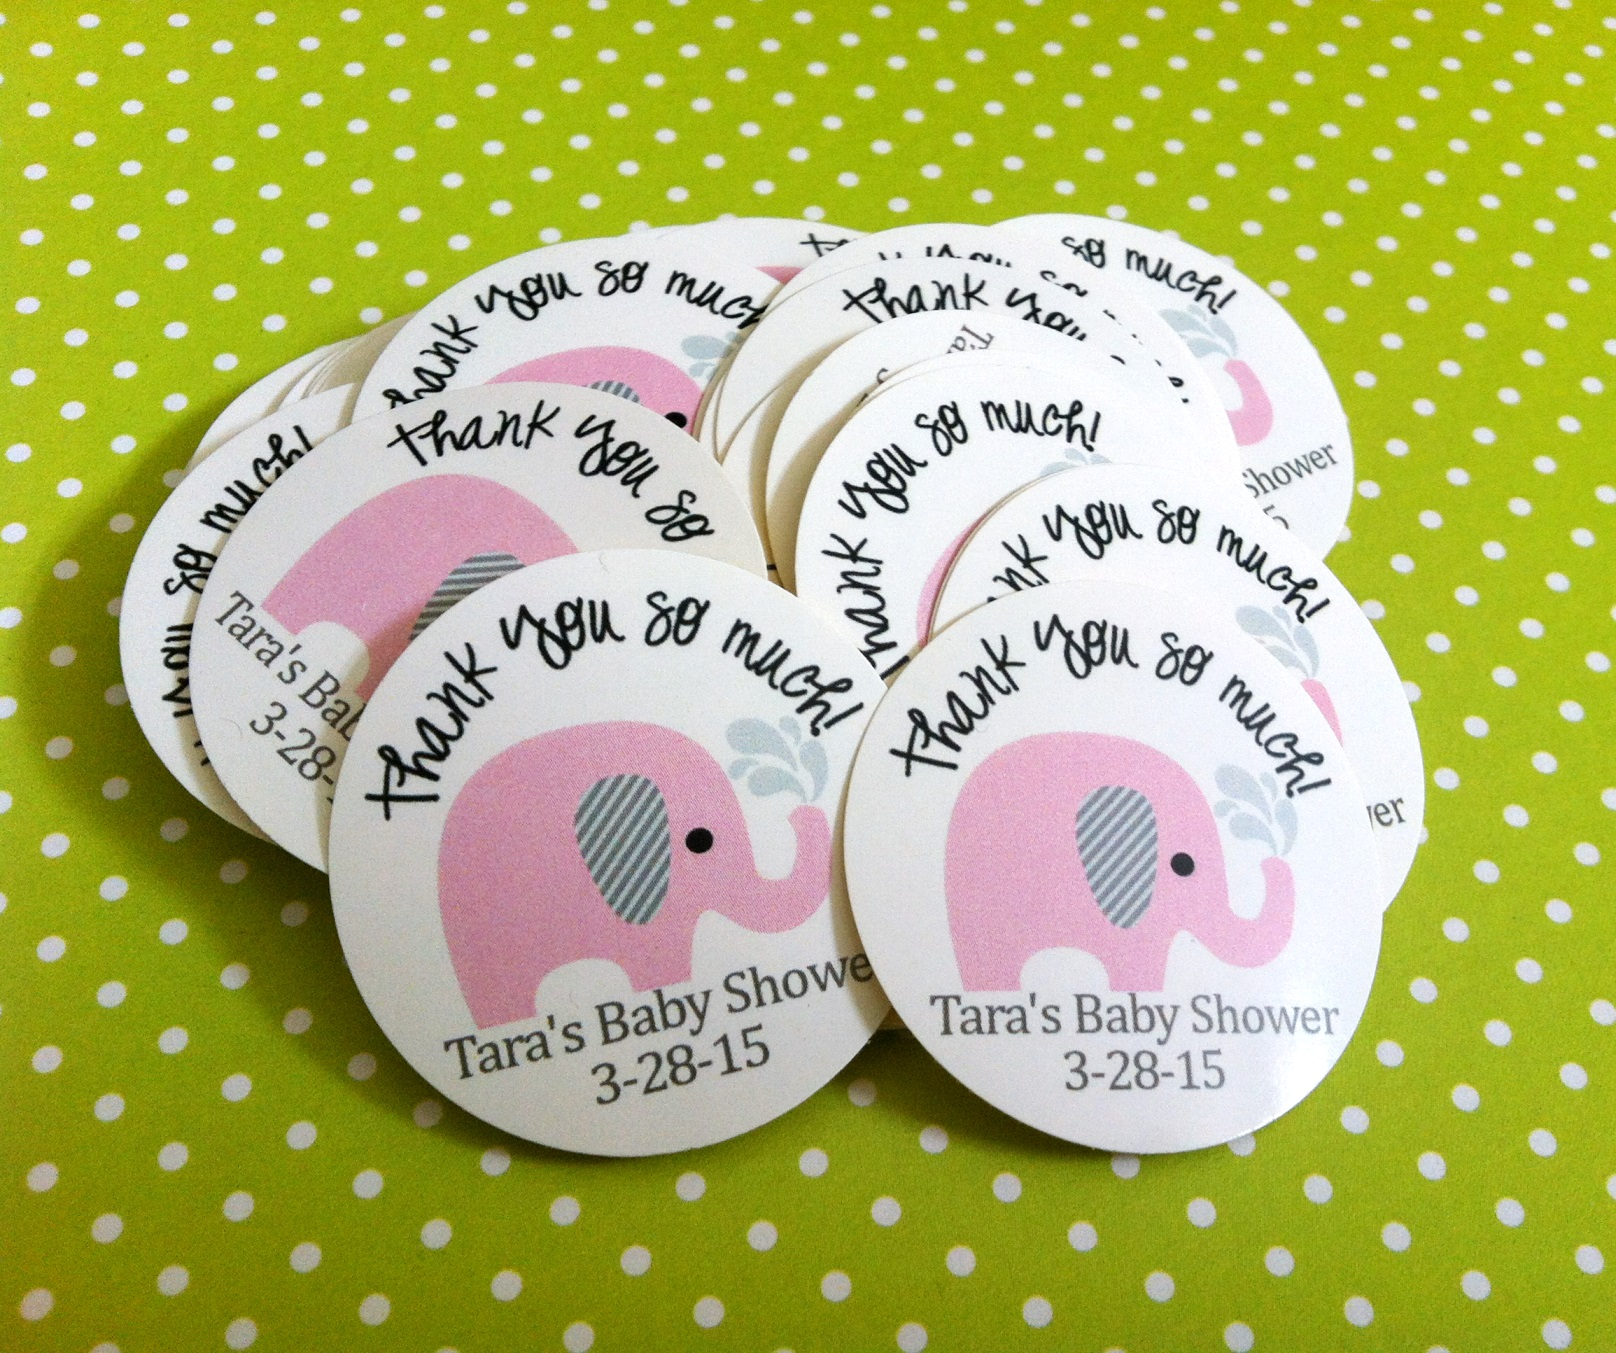 birthday stickers for babies ; Pink-Elephant-Stickers-for-Baby-Shower-or-Birthday